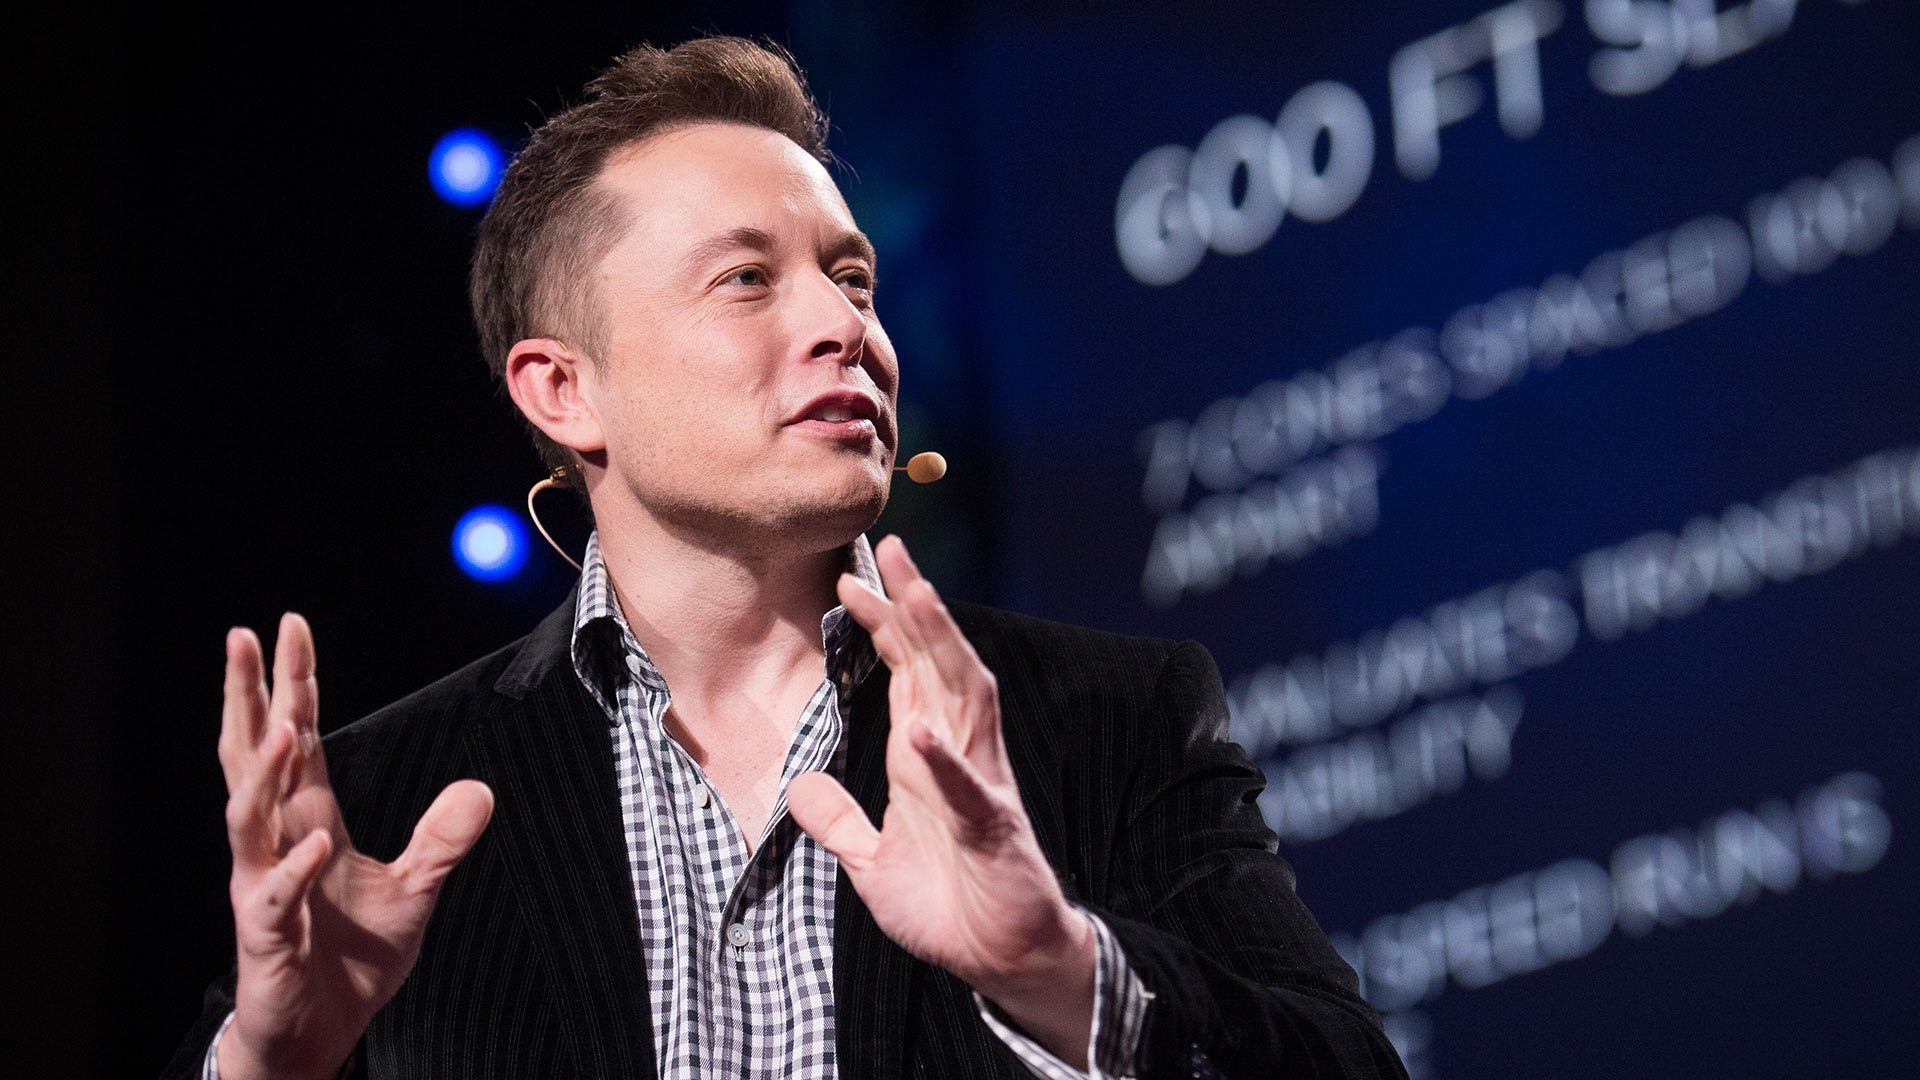 elon-musk-celebrity-wallpaper-59779-61568-hd-wallpapers_1.jpg